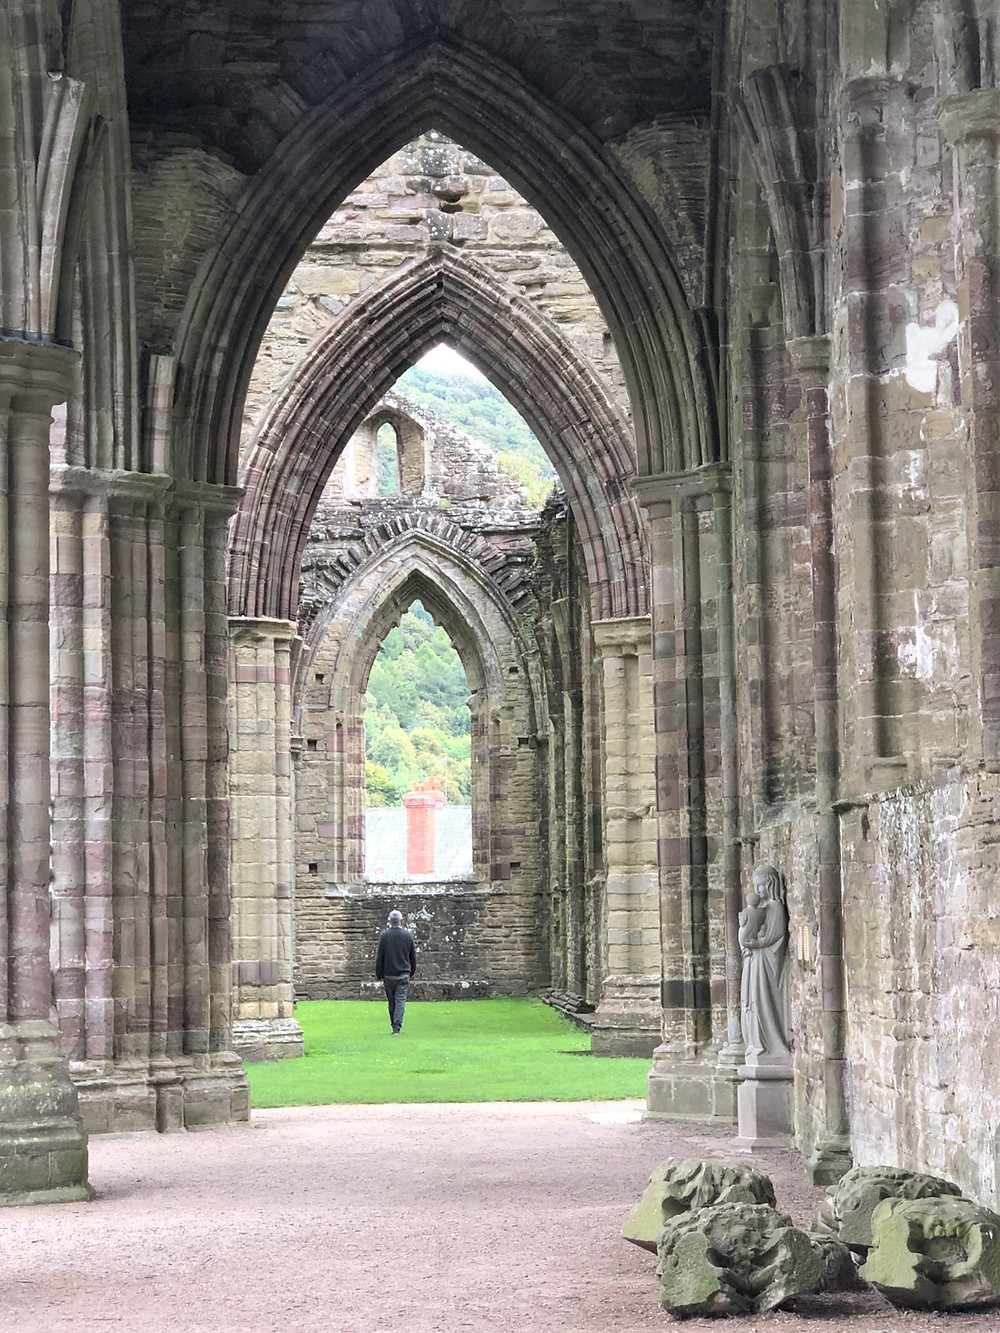 Ruins of the stone arches in north aisles adjacent to the naïve in Tintern Abbey in Southern Wales